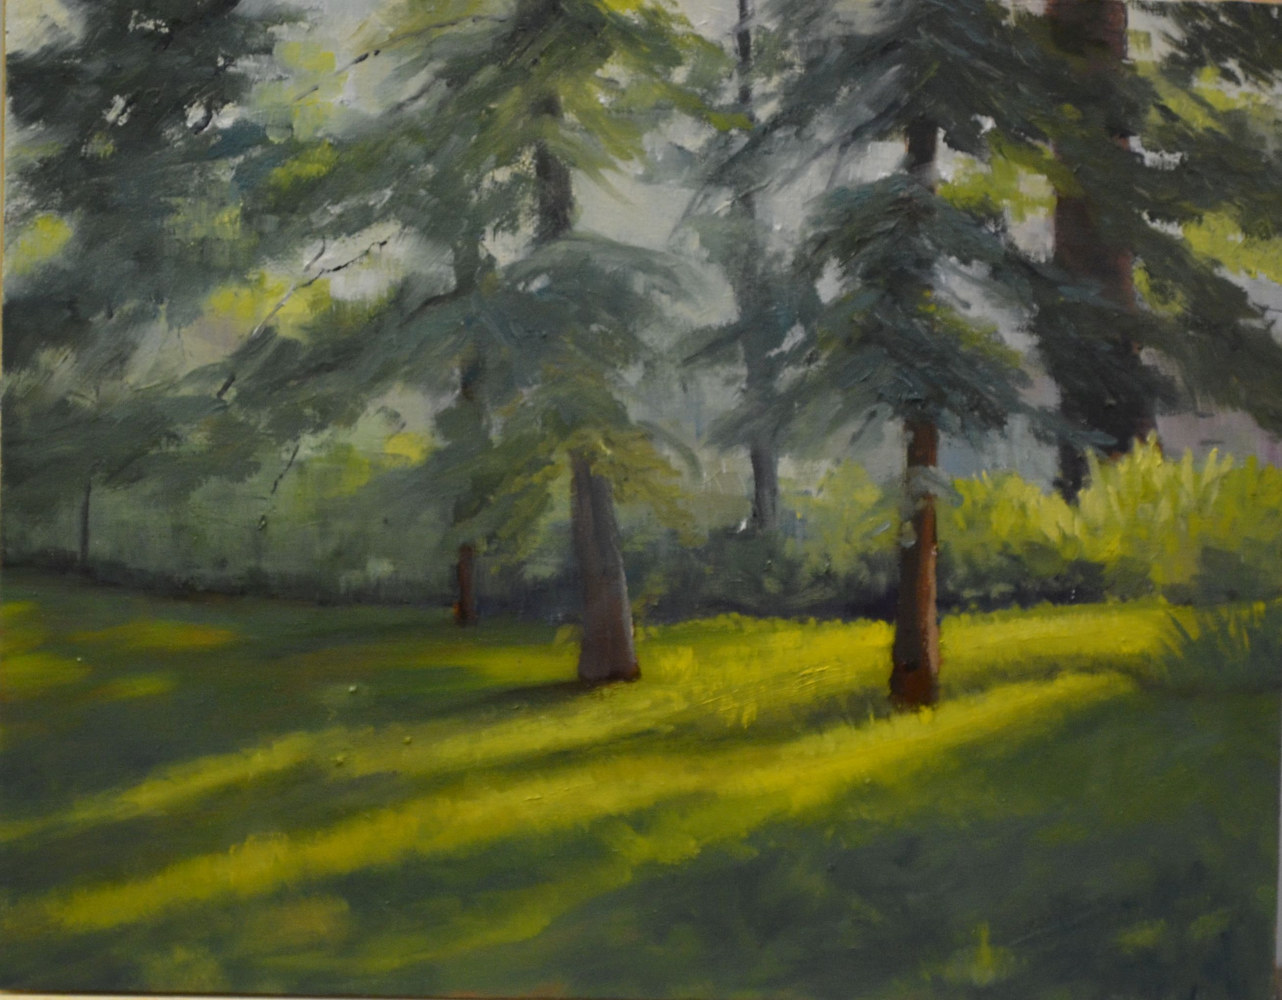 Whispering Pines - oil on cradled wood gallery panel - 11 x 14  10-0716 by Patricia Savoie